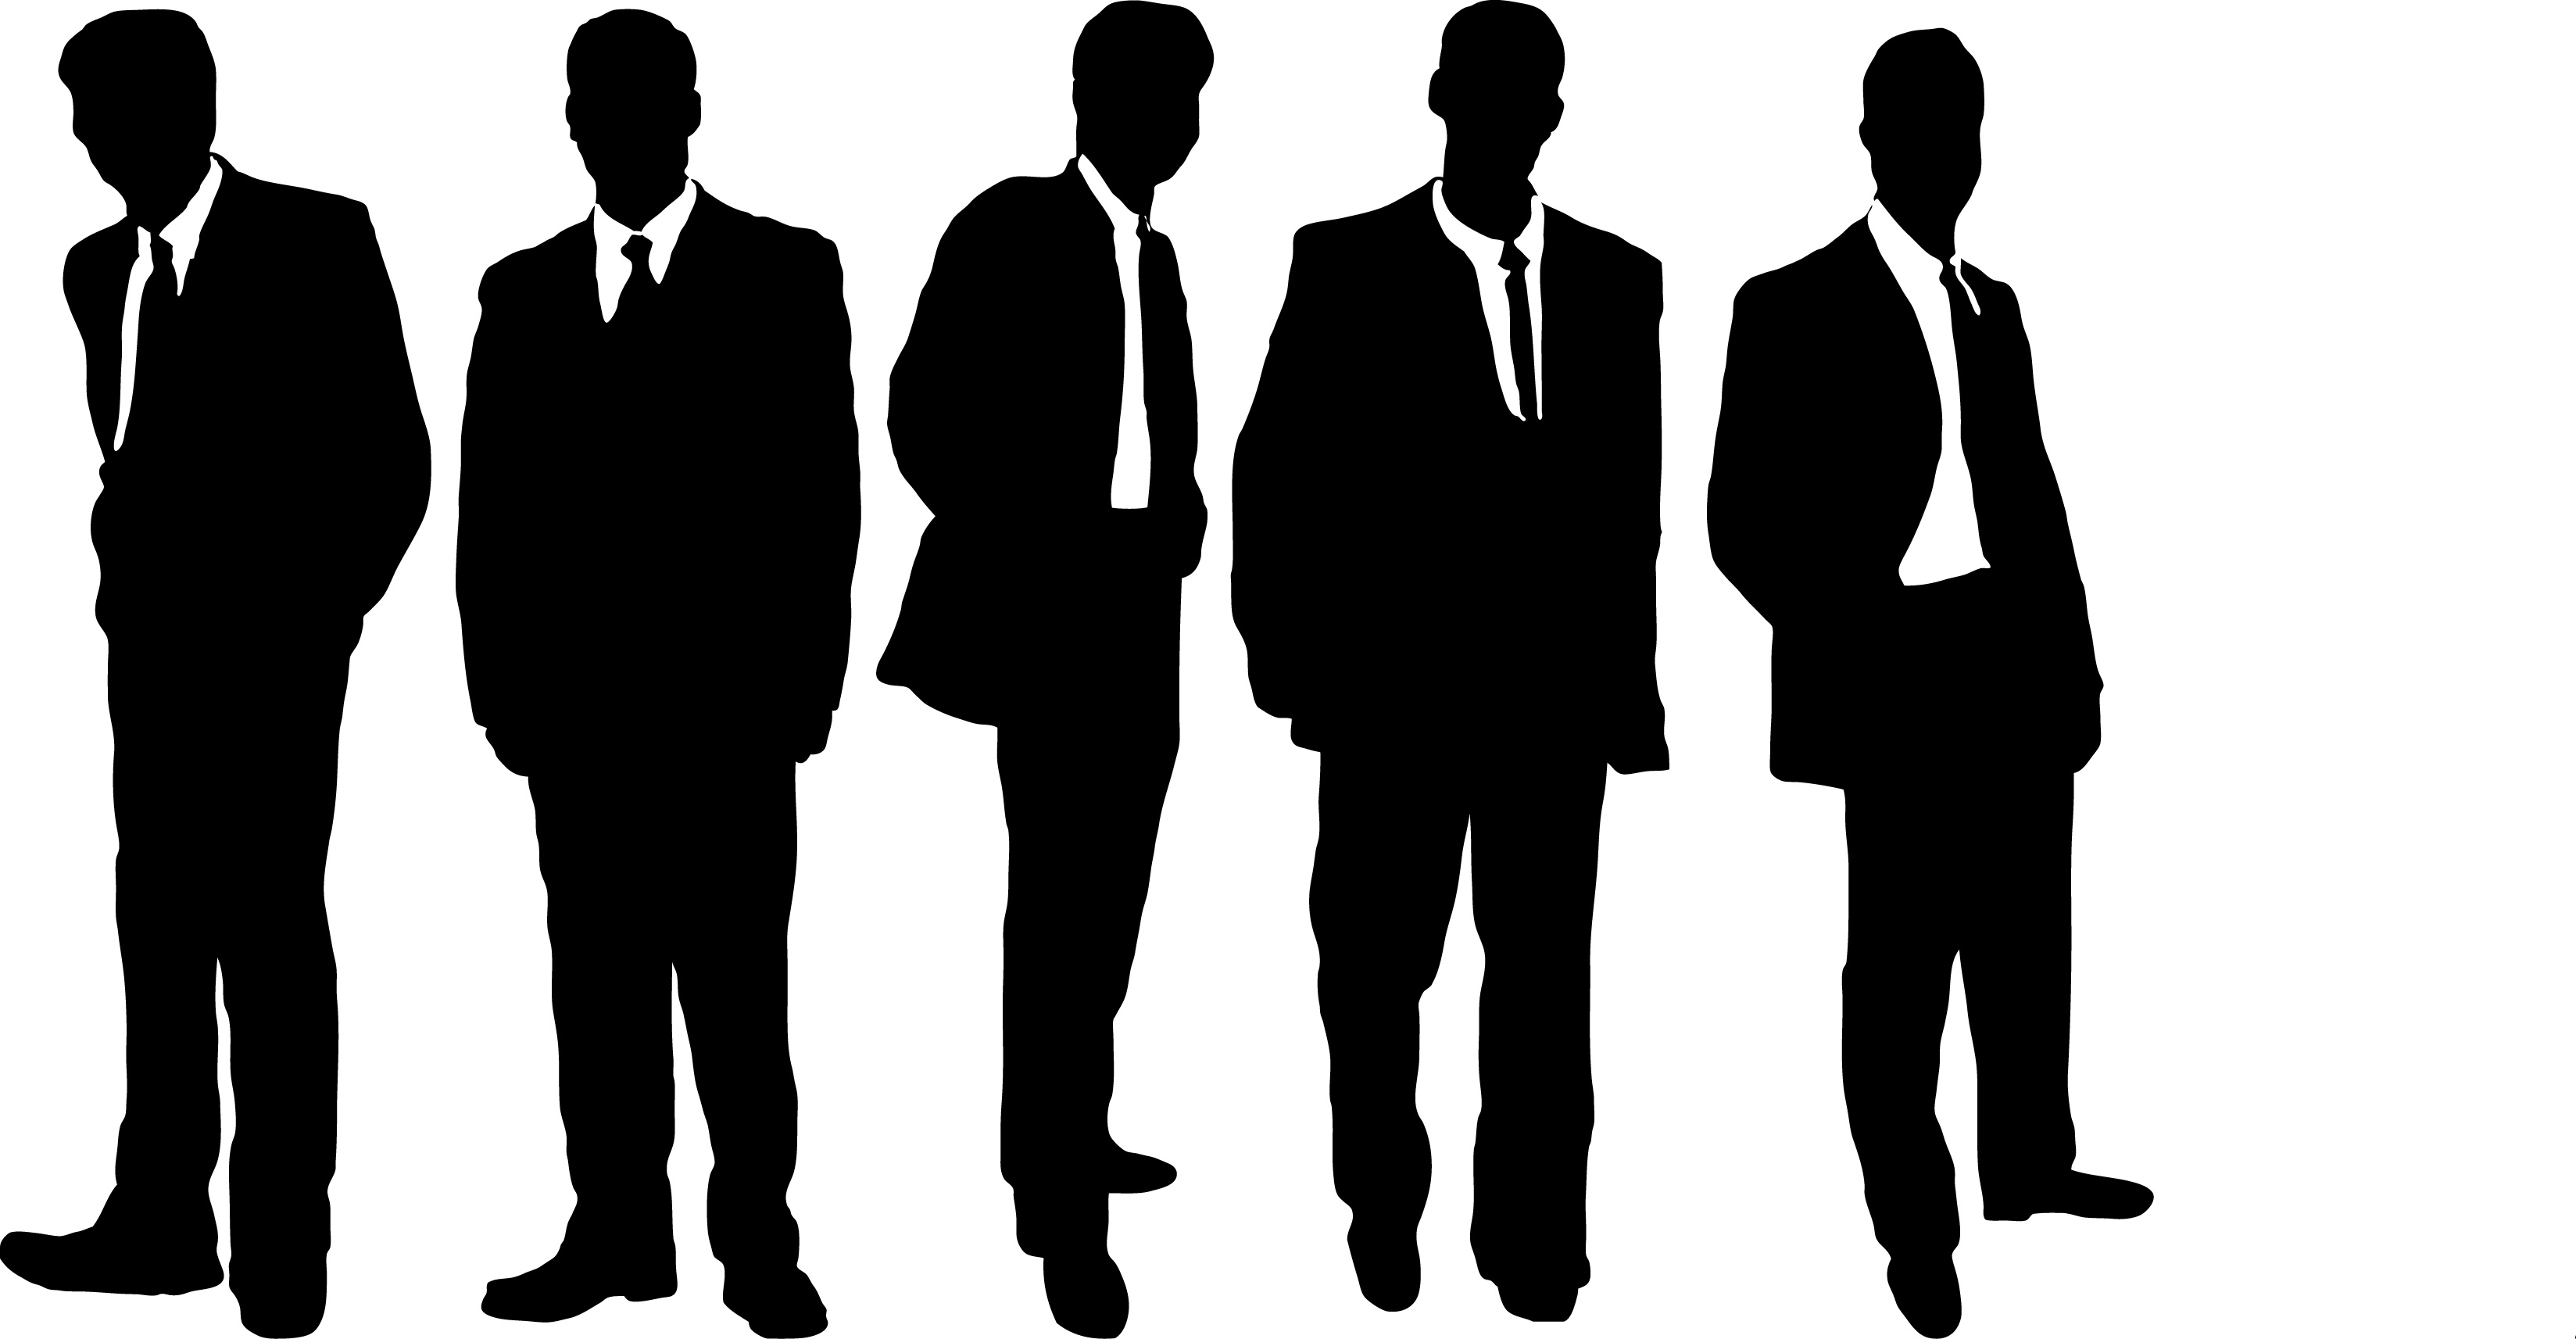 3296x1713 Business People Clipart Transparent